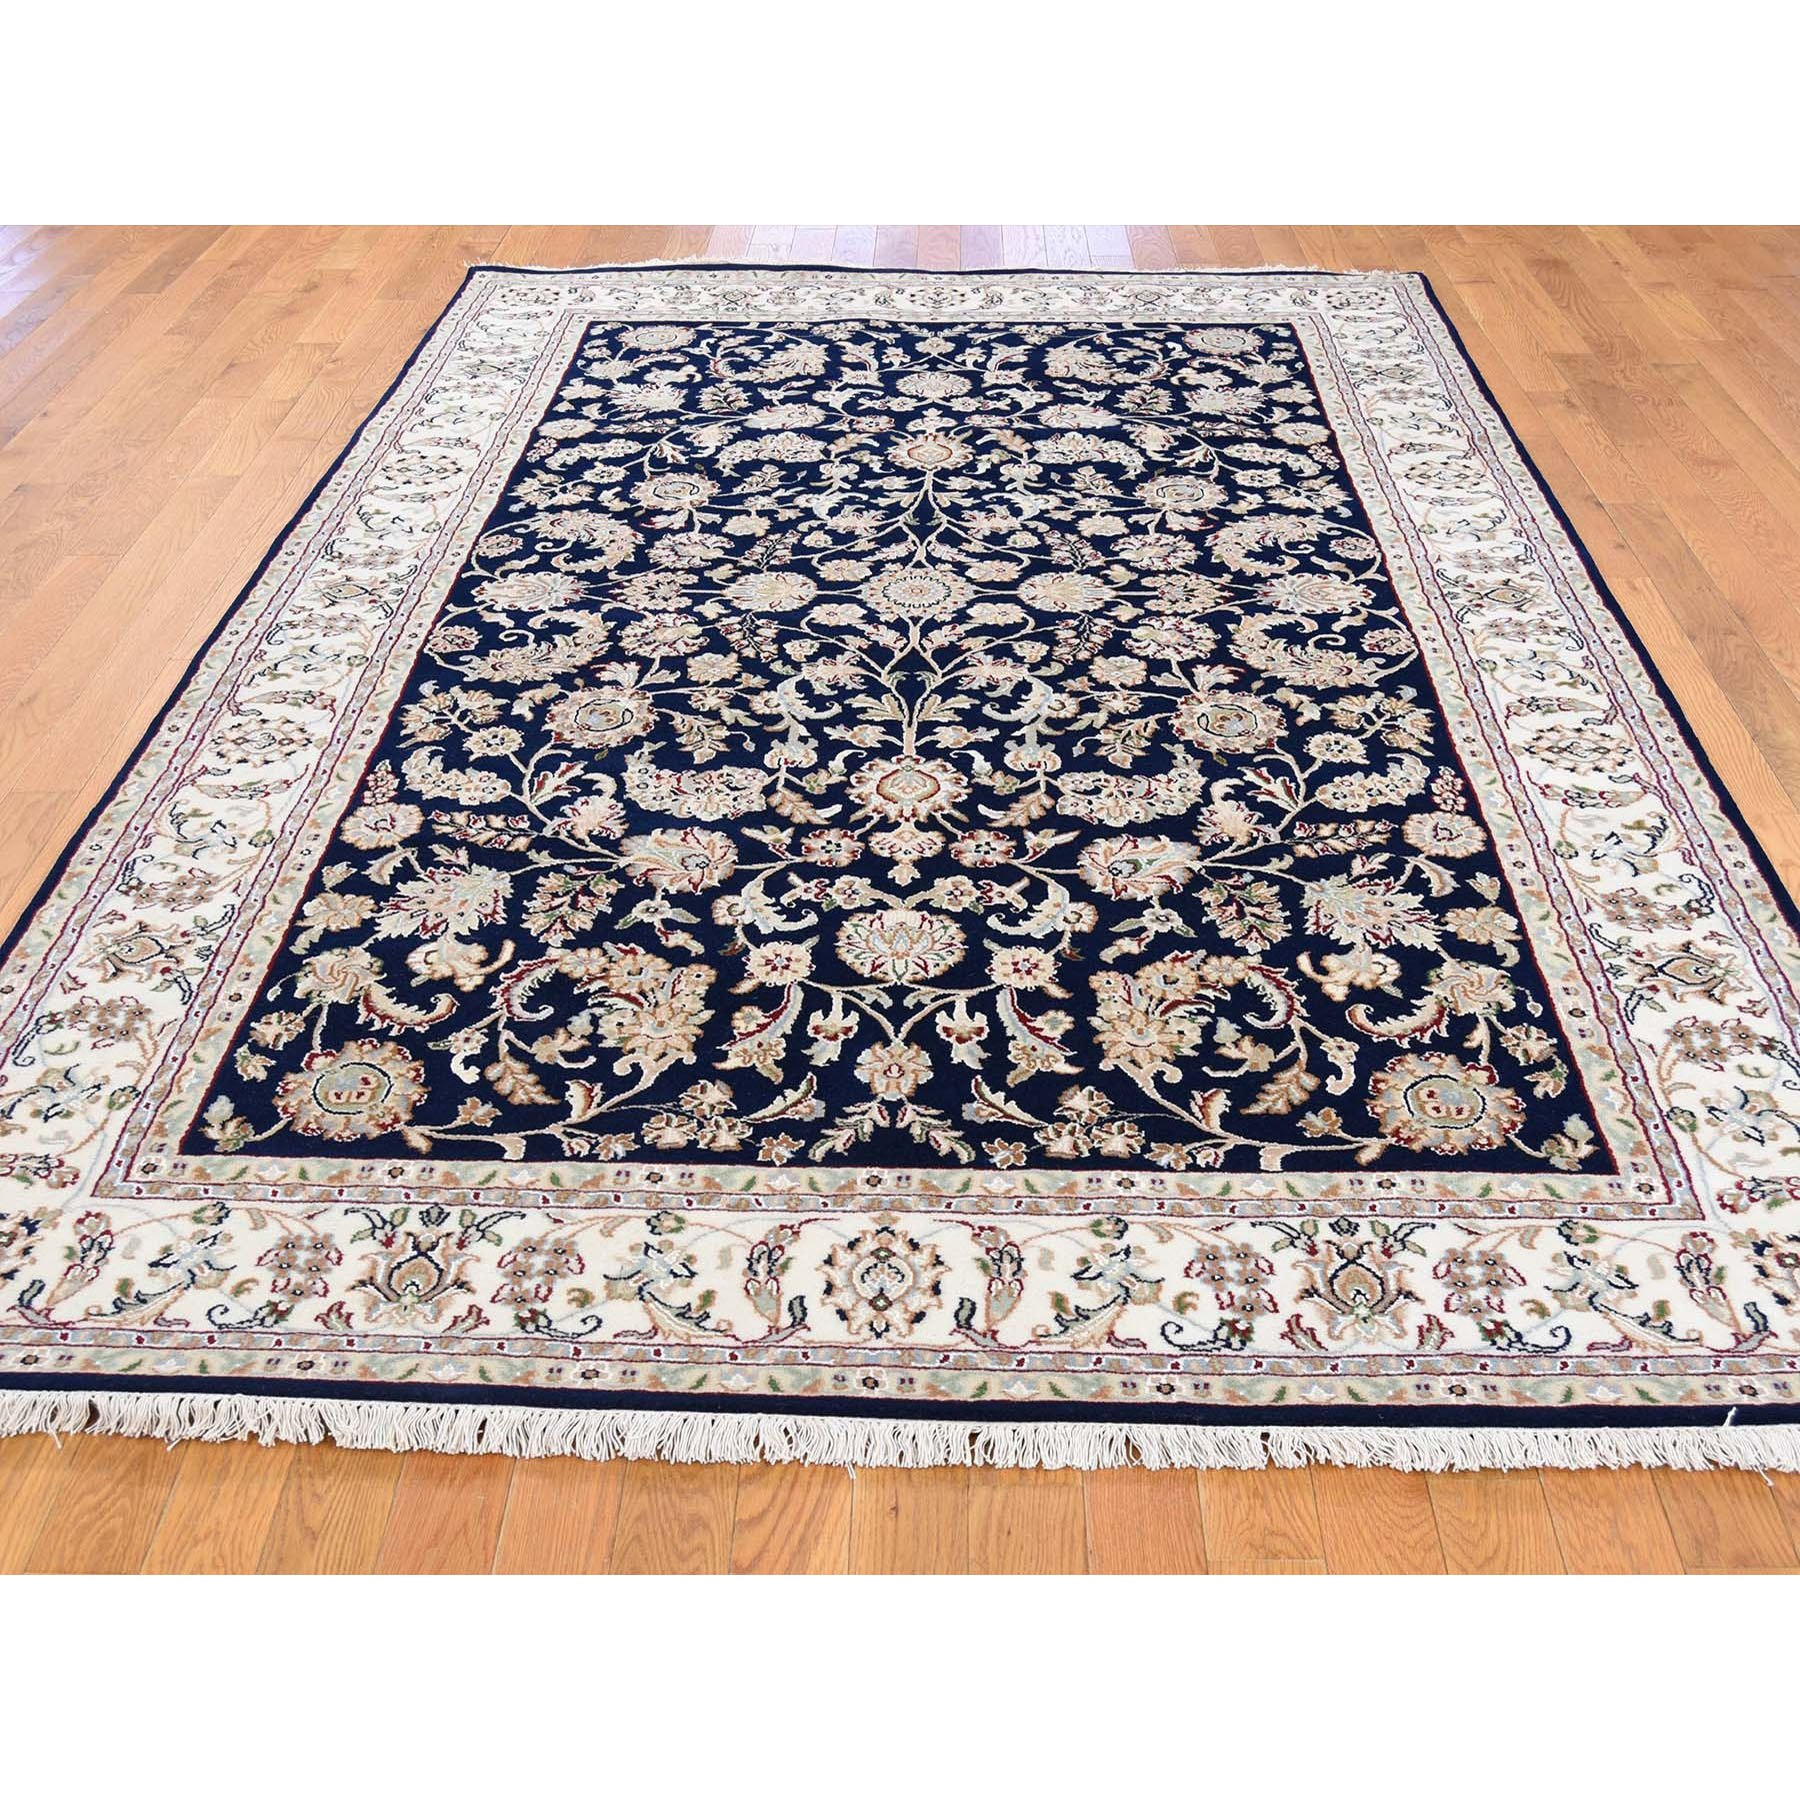 """6'1""""x9' Wool and Silk 250 KPSI All Over Design Navy Blue Nain Hand-Knotted Oriental Rug"""